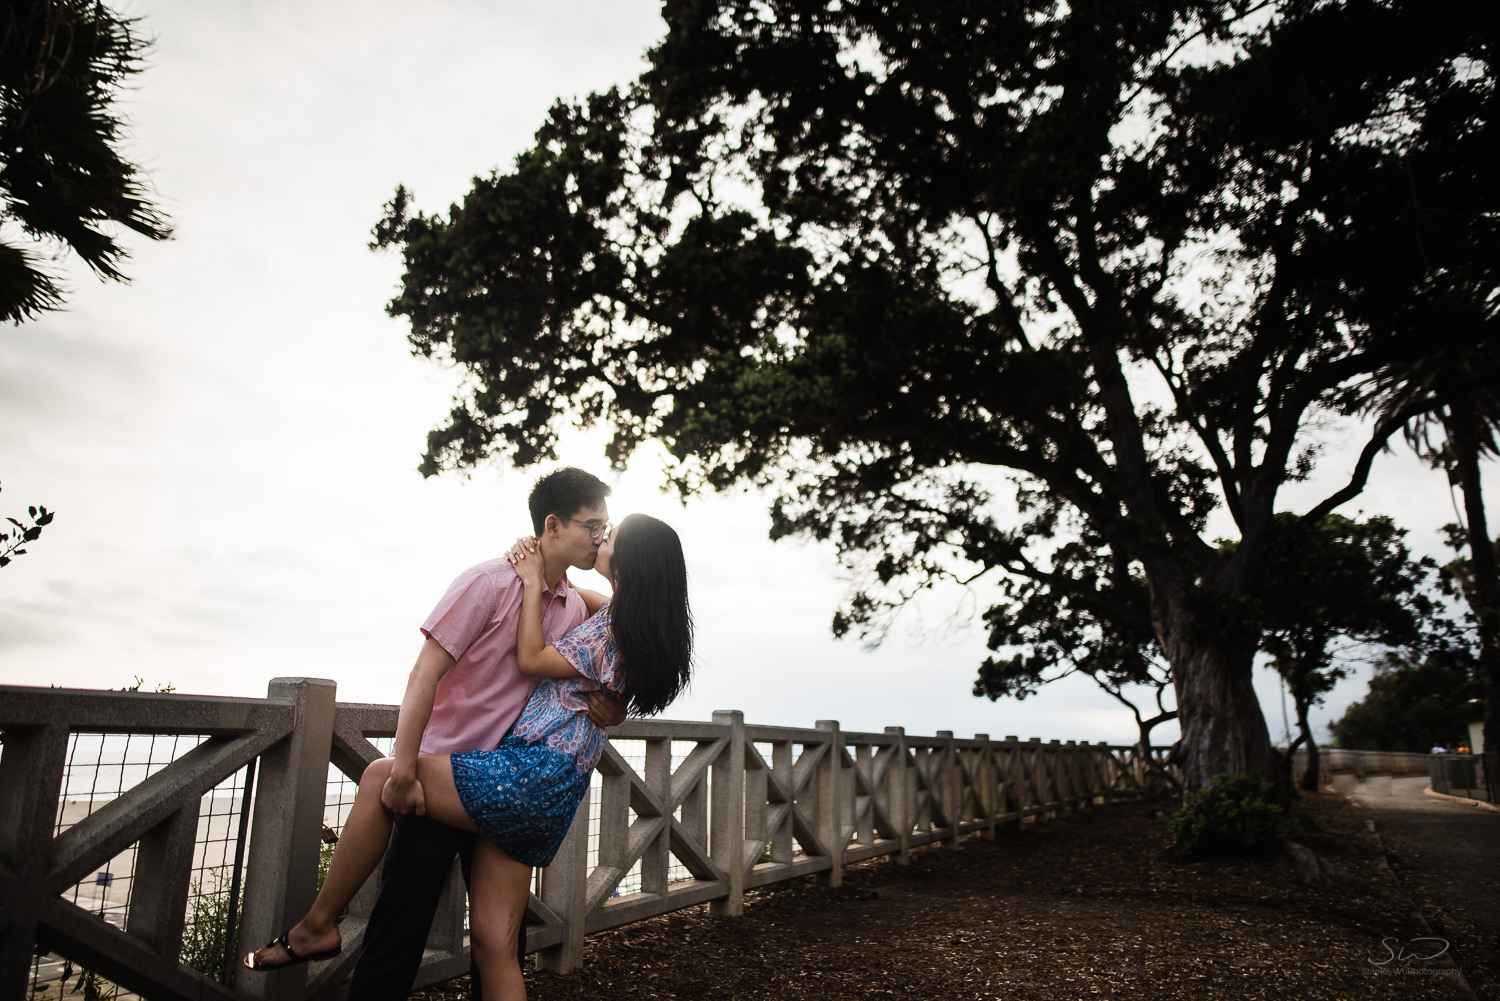 downtown-santa-monica-pier-and-beach-engagement-stanley-wu-photography-los-angeles-portrait-and-wedding-photographer-24.jpg